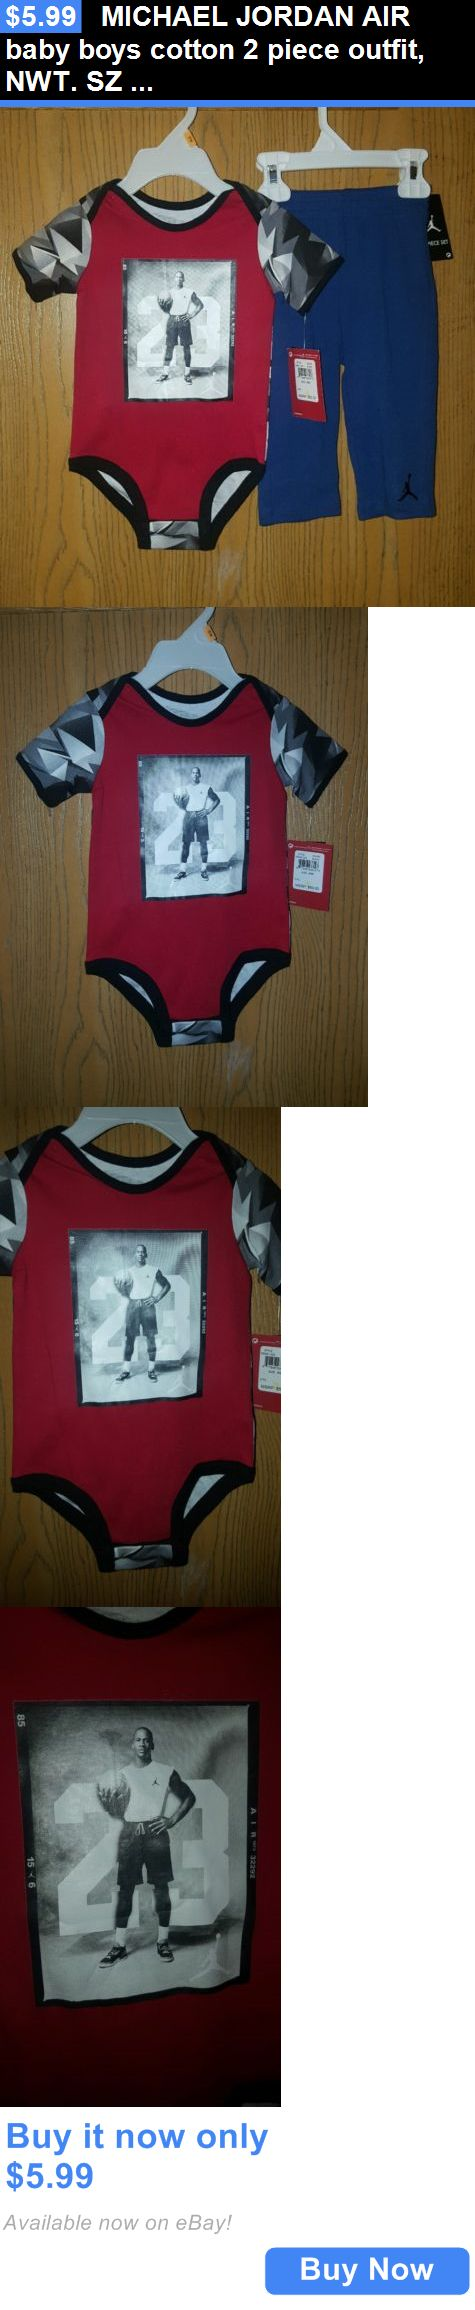 Michael Jordan Baby Clothing: Michael Jordan Air Baby Boys Cotton 2 Piece Outfit, Nwt. Sz 6-9 Mo, Very Nice! BUY IT NOW ONLY: $5.99